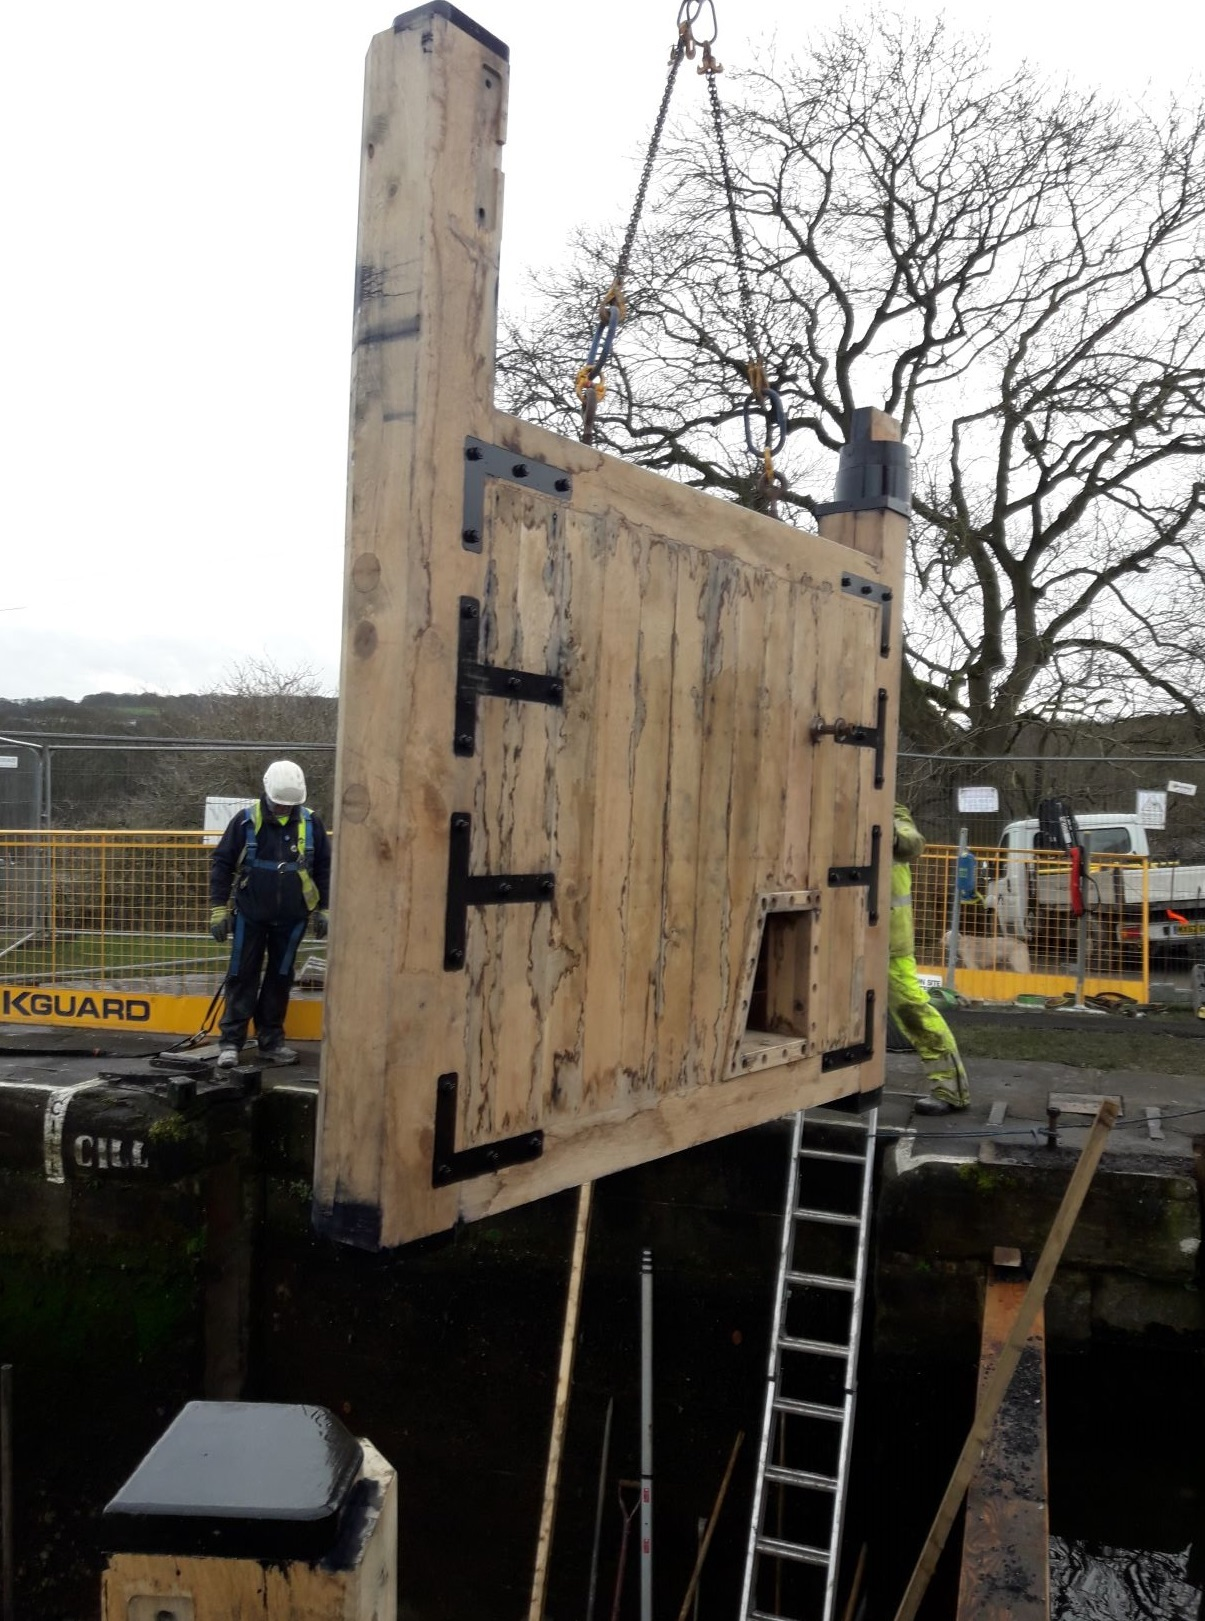 Canal & River trust to hold Bingley lock open day